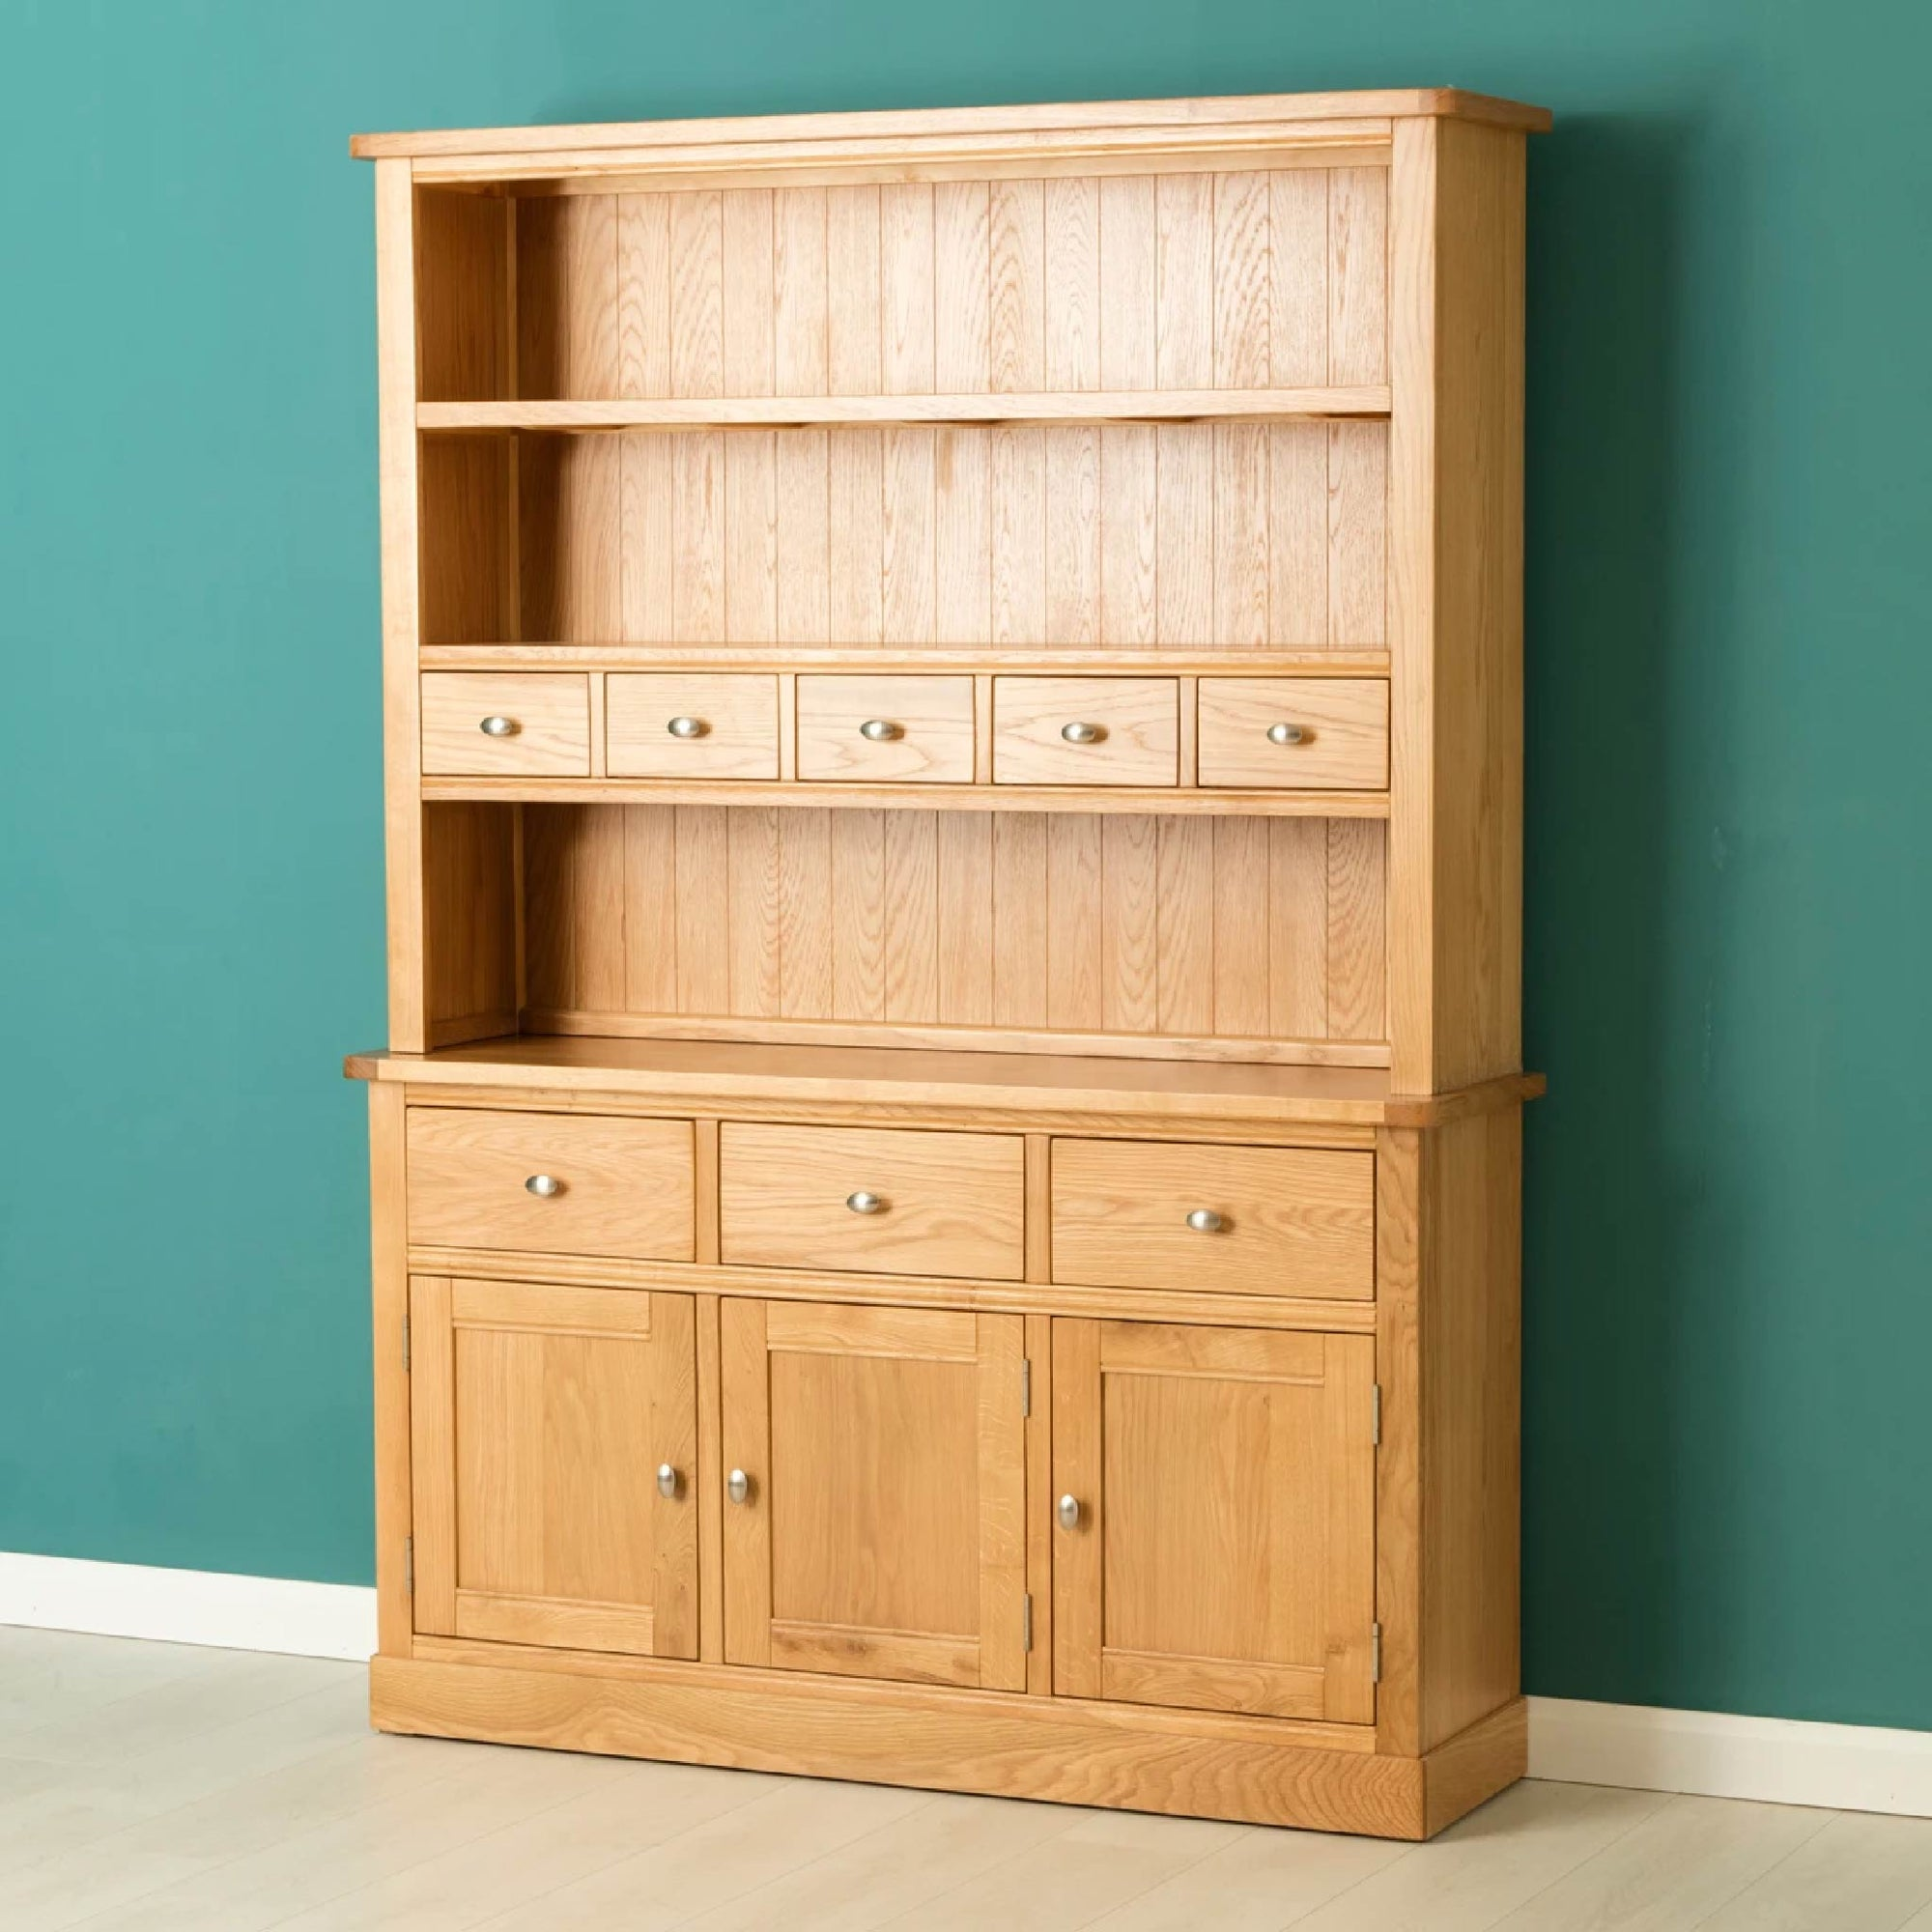 Hampshire Oak Dresser Display Unit by Roseland Furniture